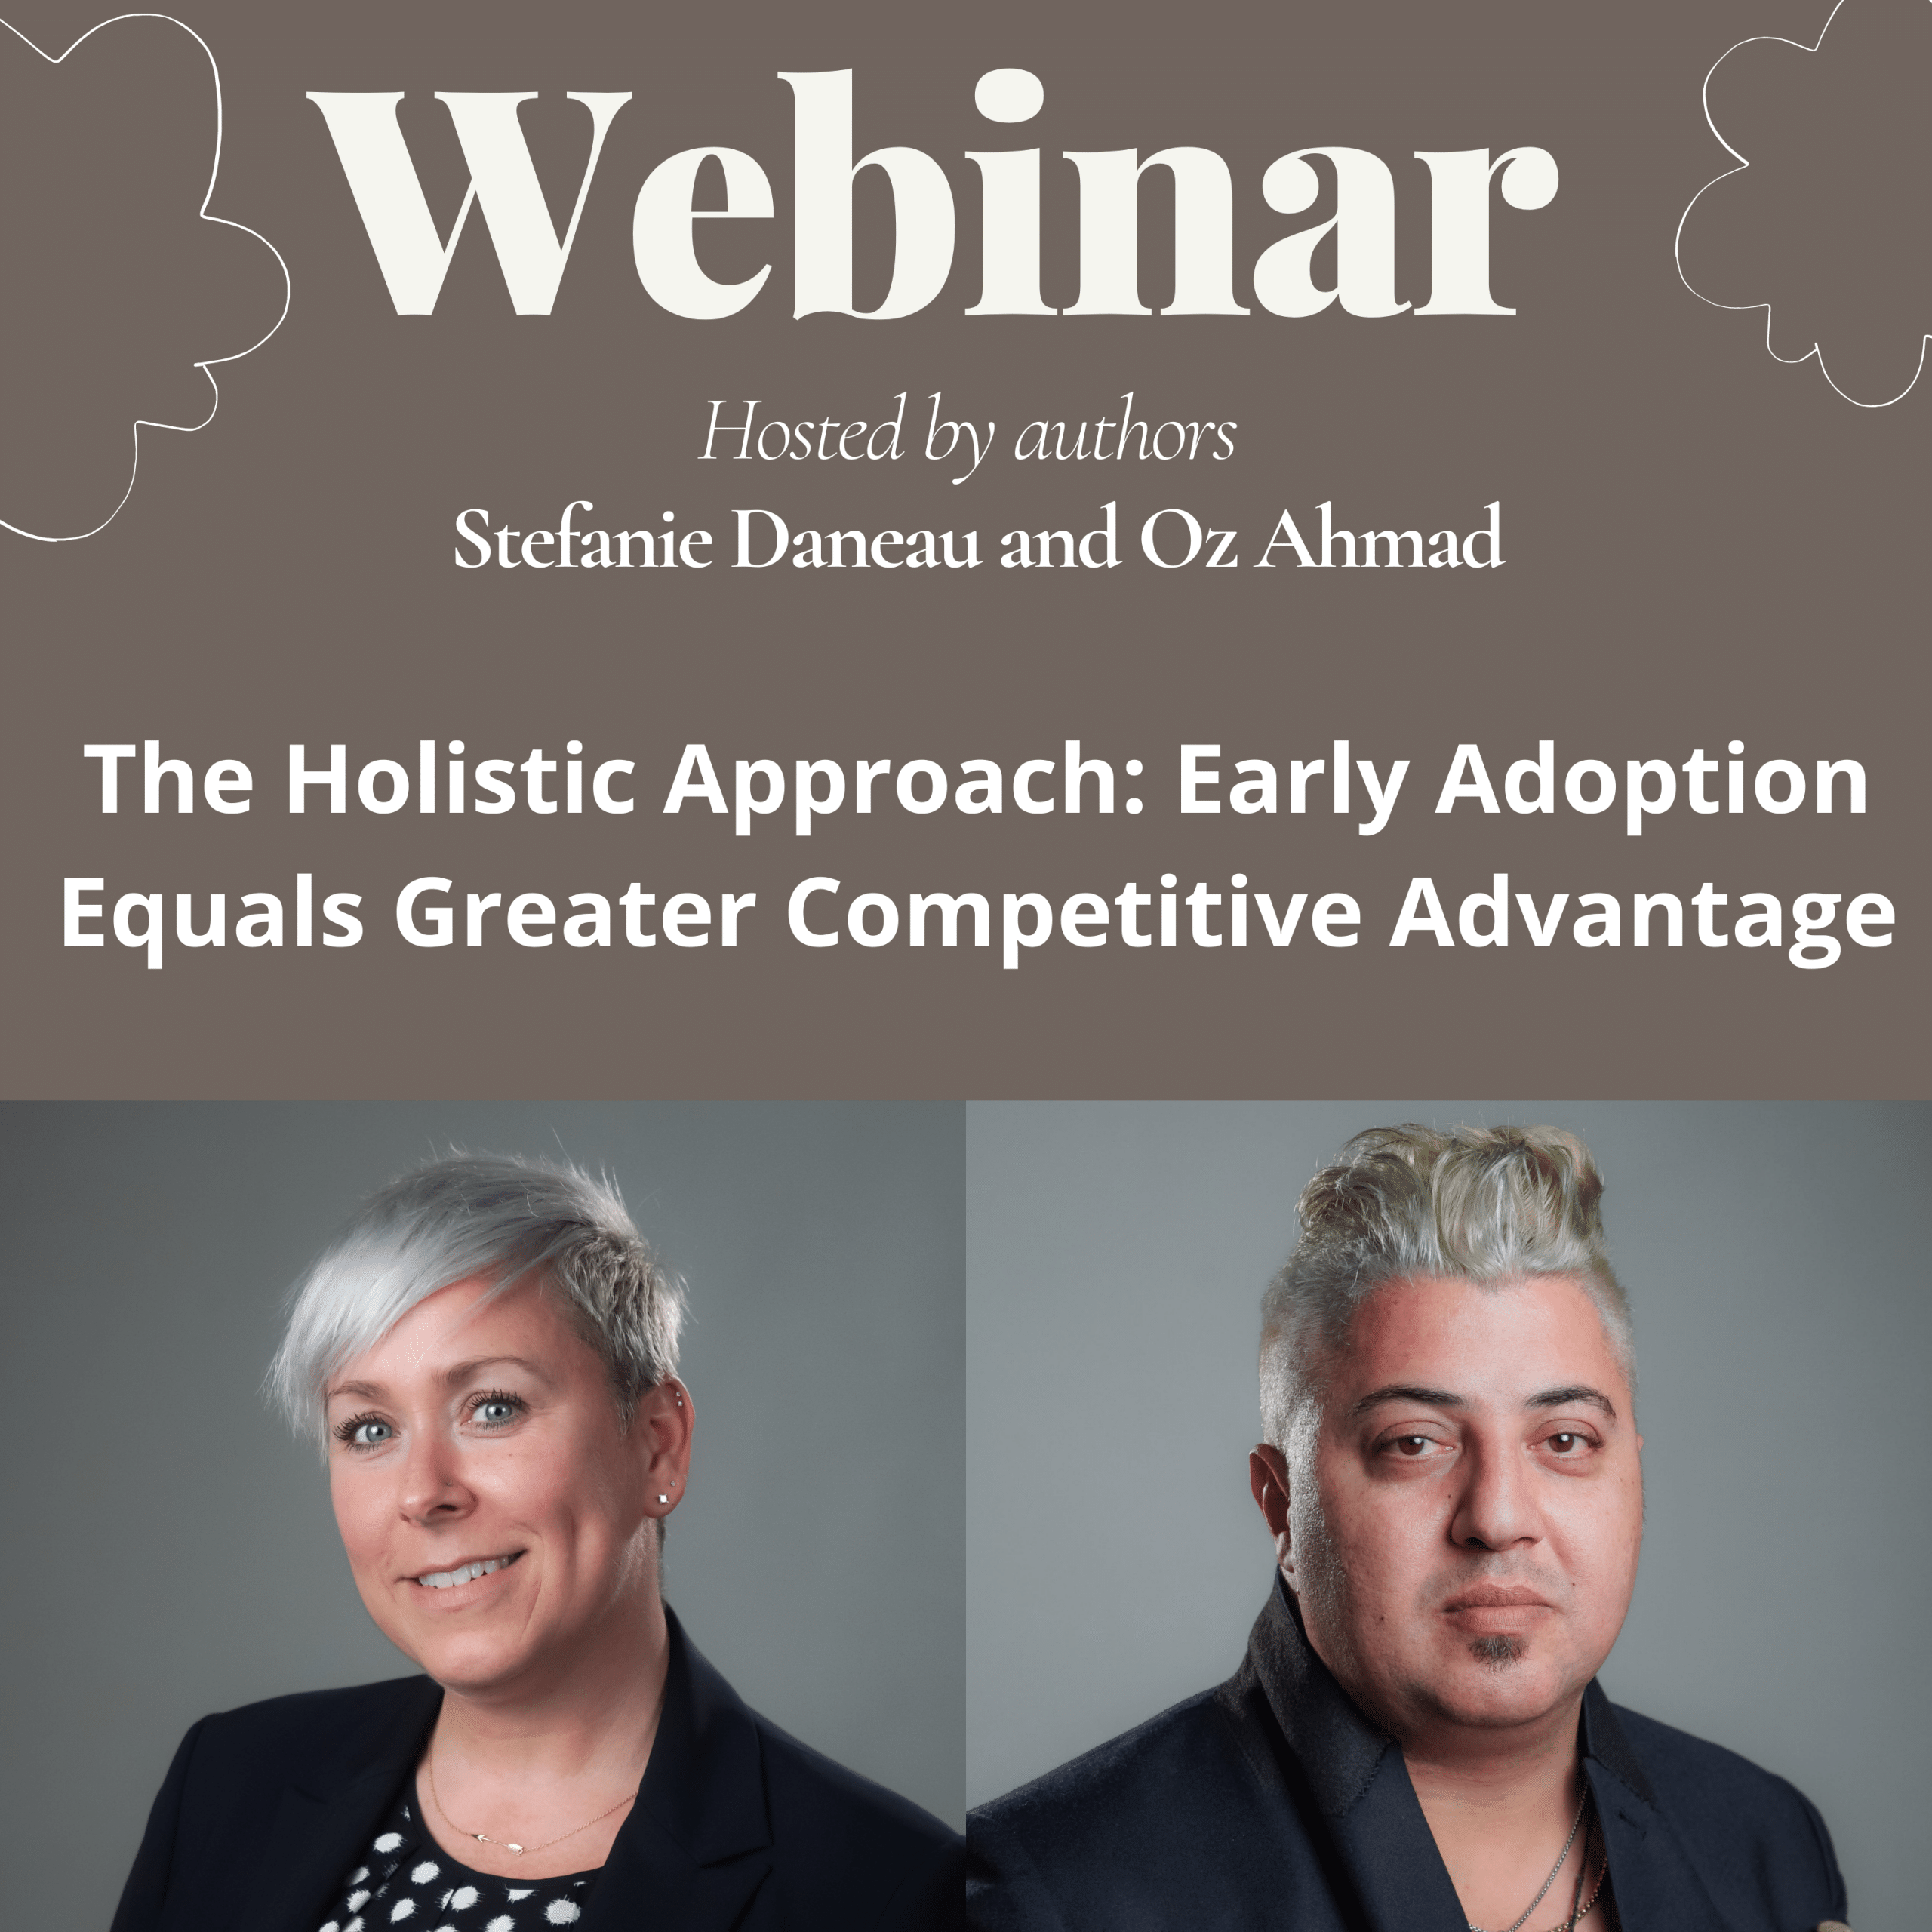 The Holistic Approach: Early Adoption Equals Greater Competitive Advantage